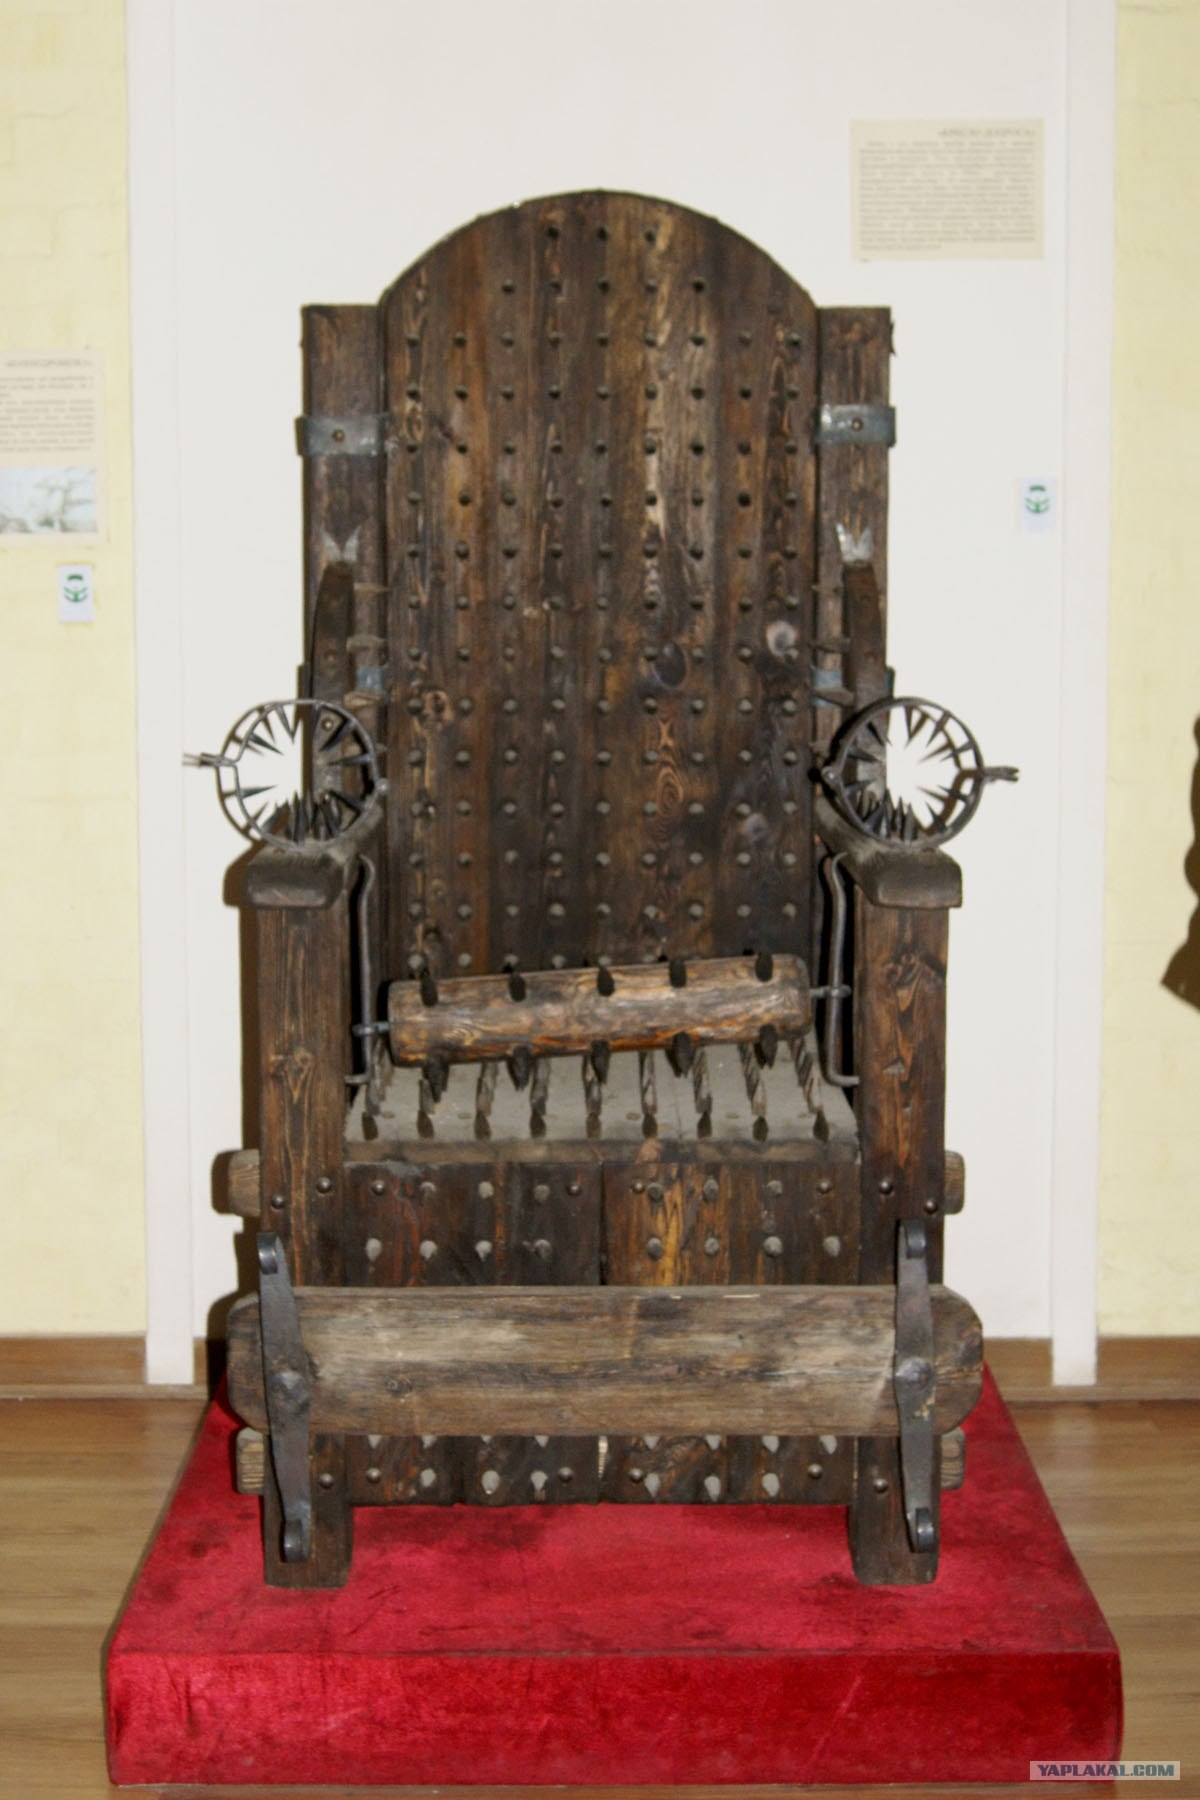 Milf medieval torture chair nackt image